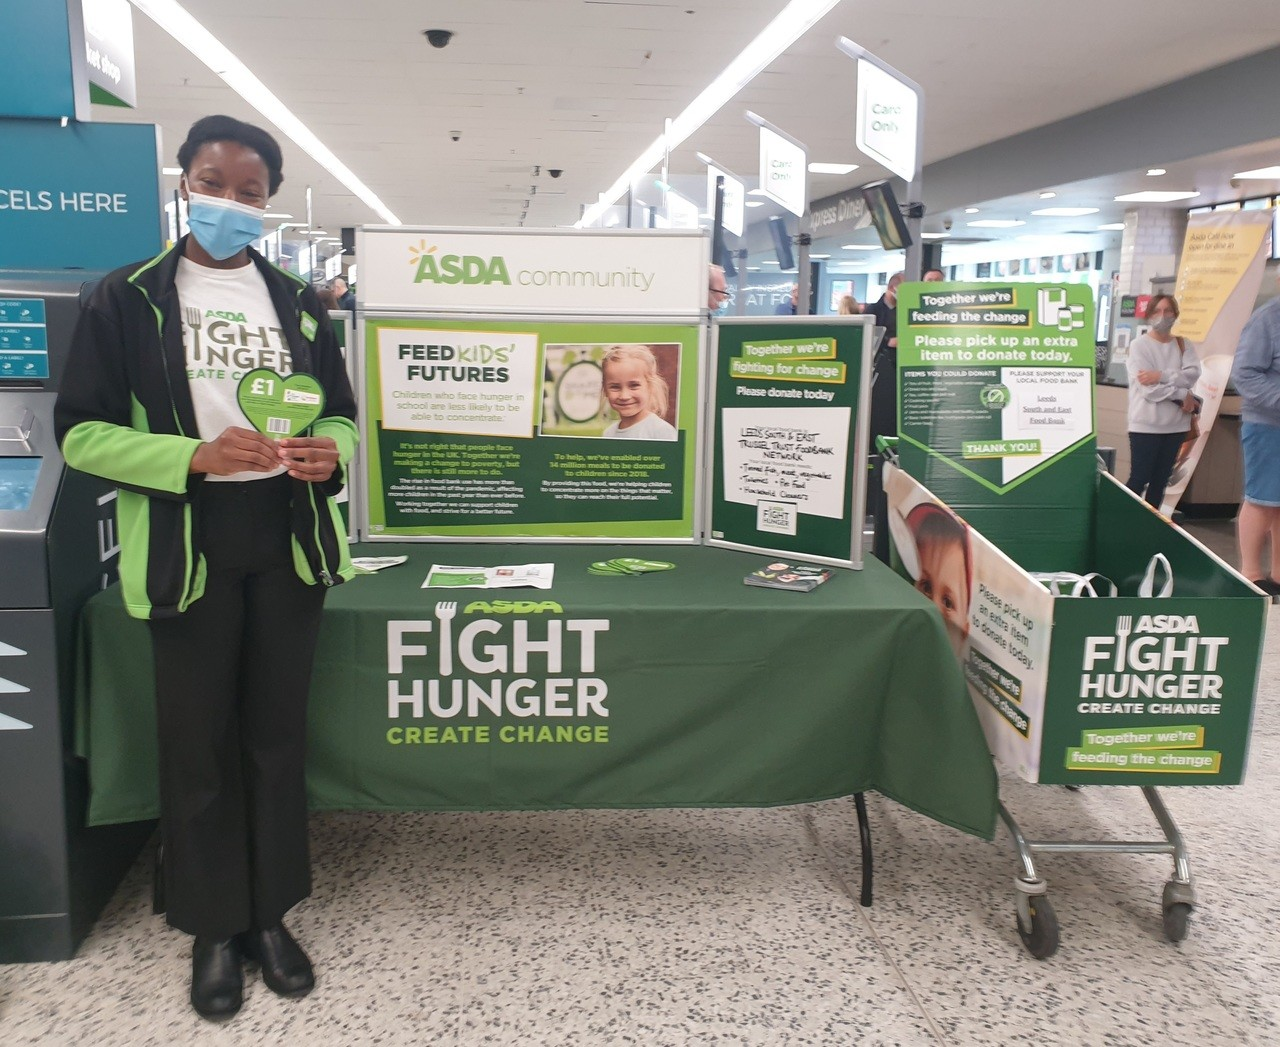 Supporting Fight Hunger Create Change | Asda Killingbeck